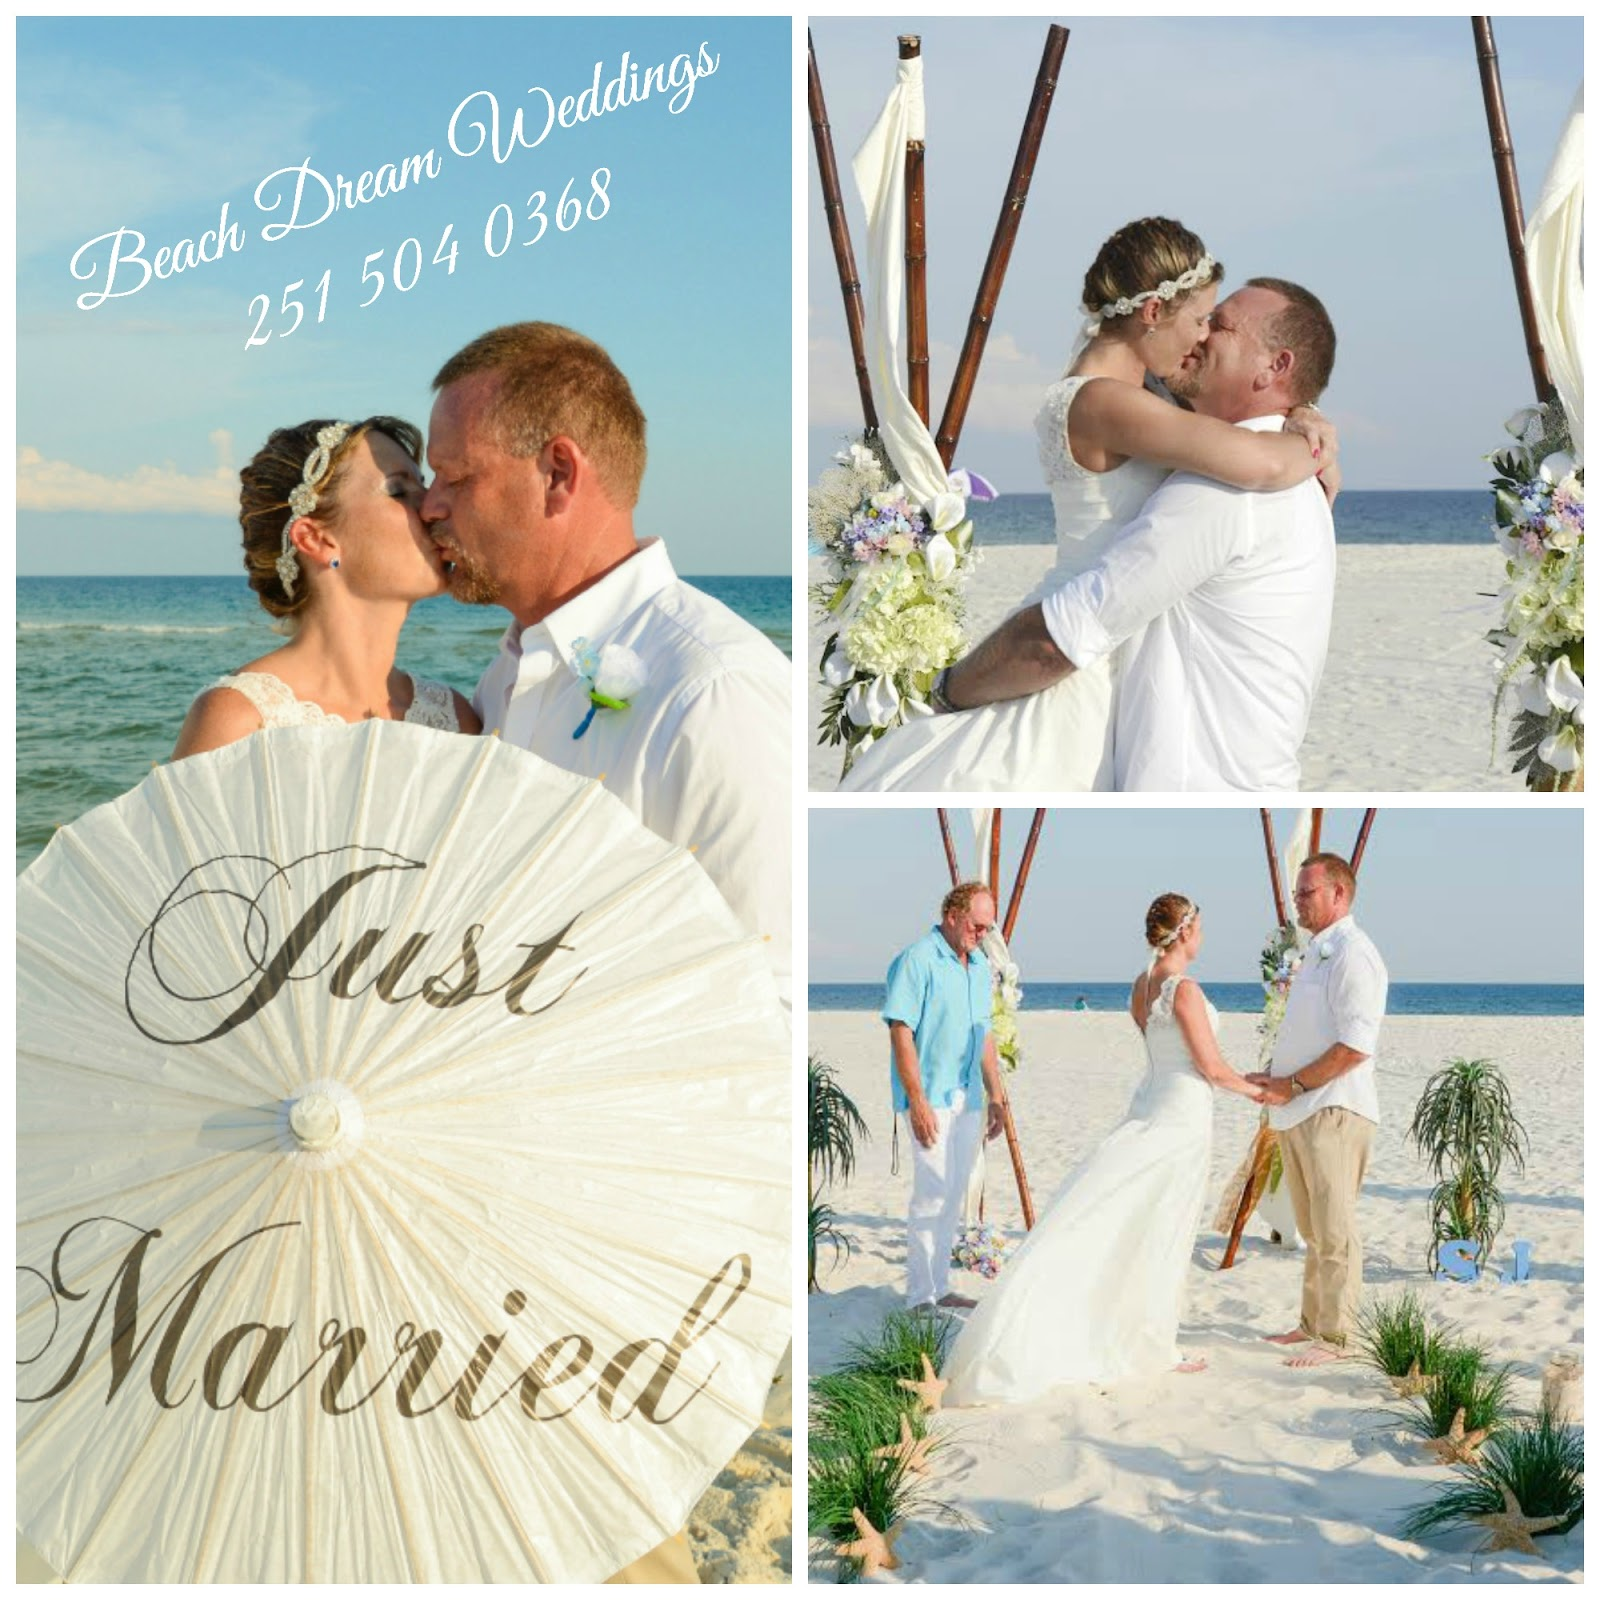 Beach Dream Weddings, LLC - 251.504.0368: Beach Dream Weddings ...